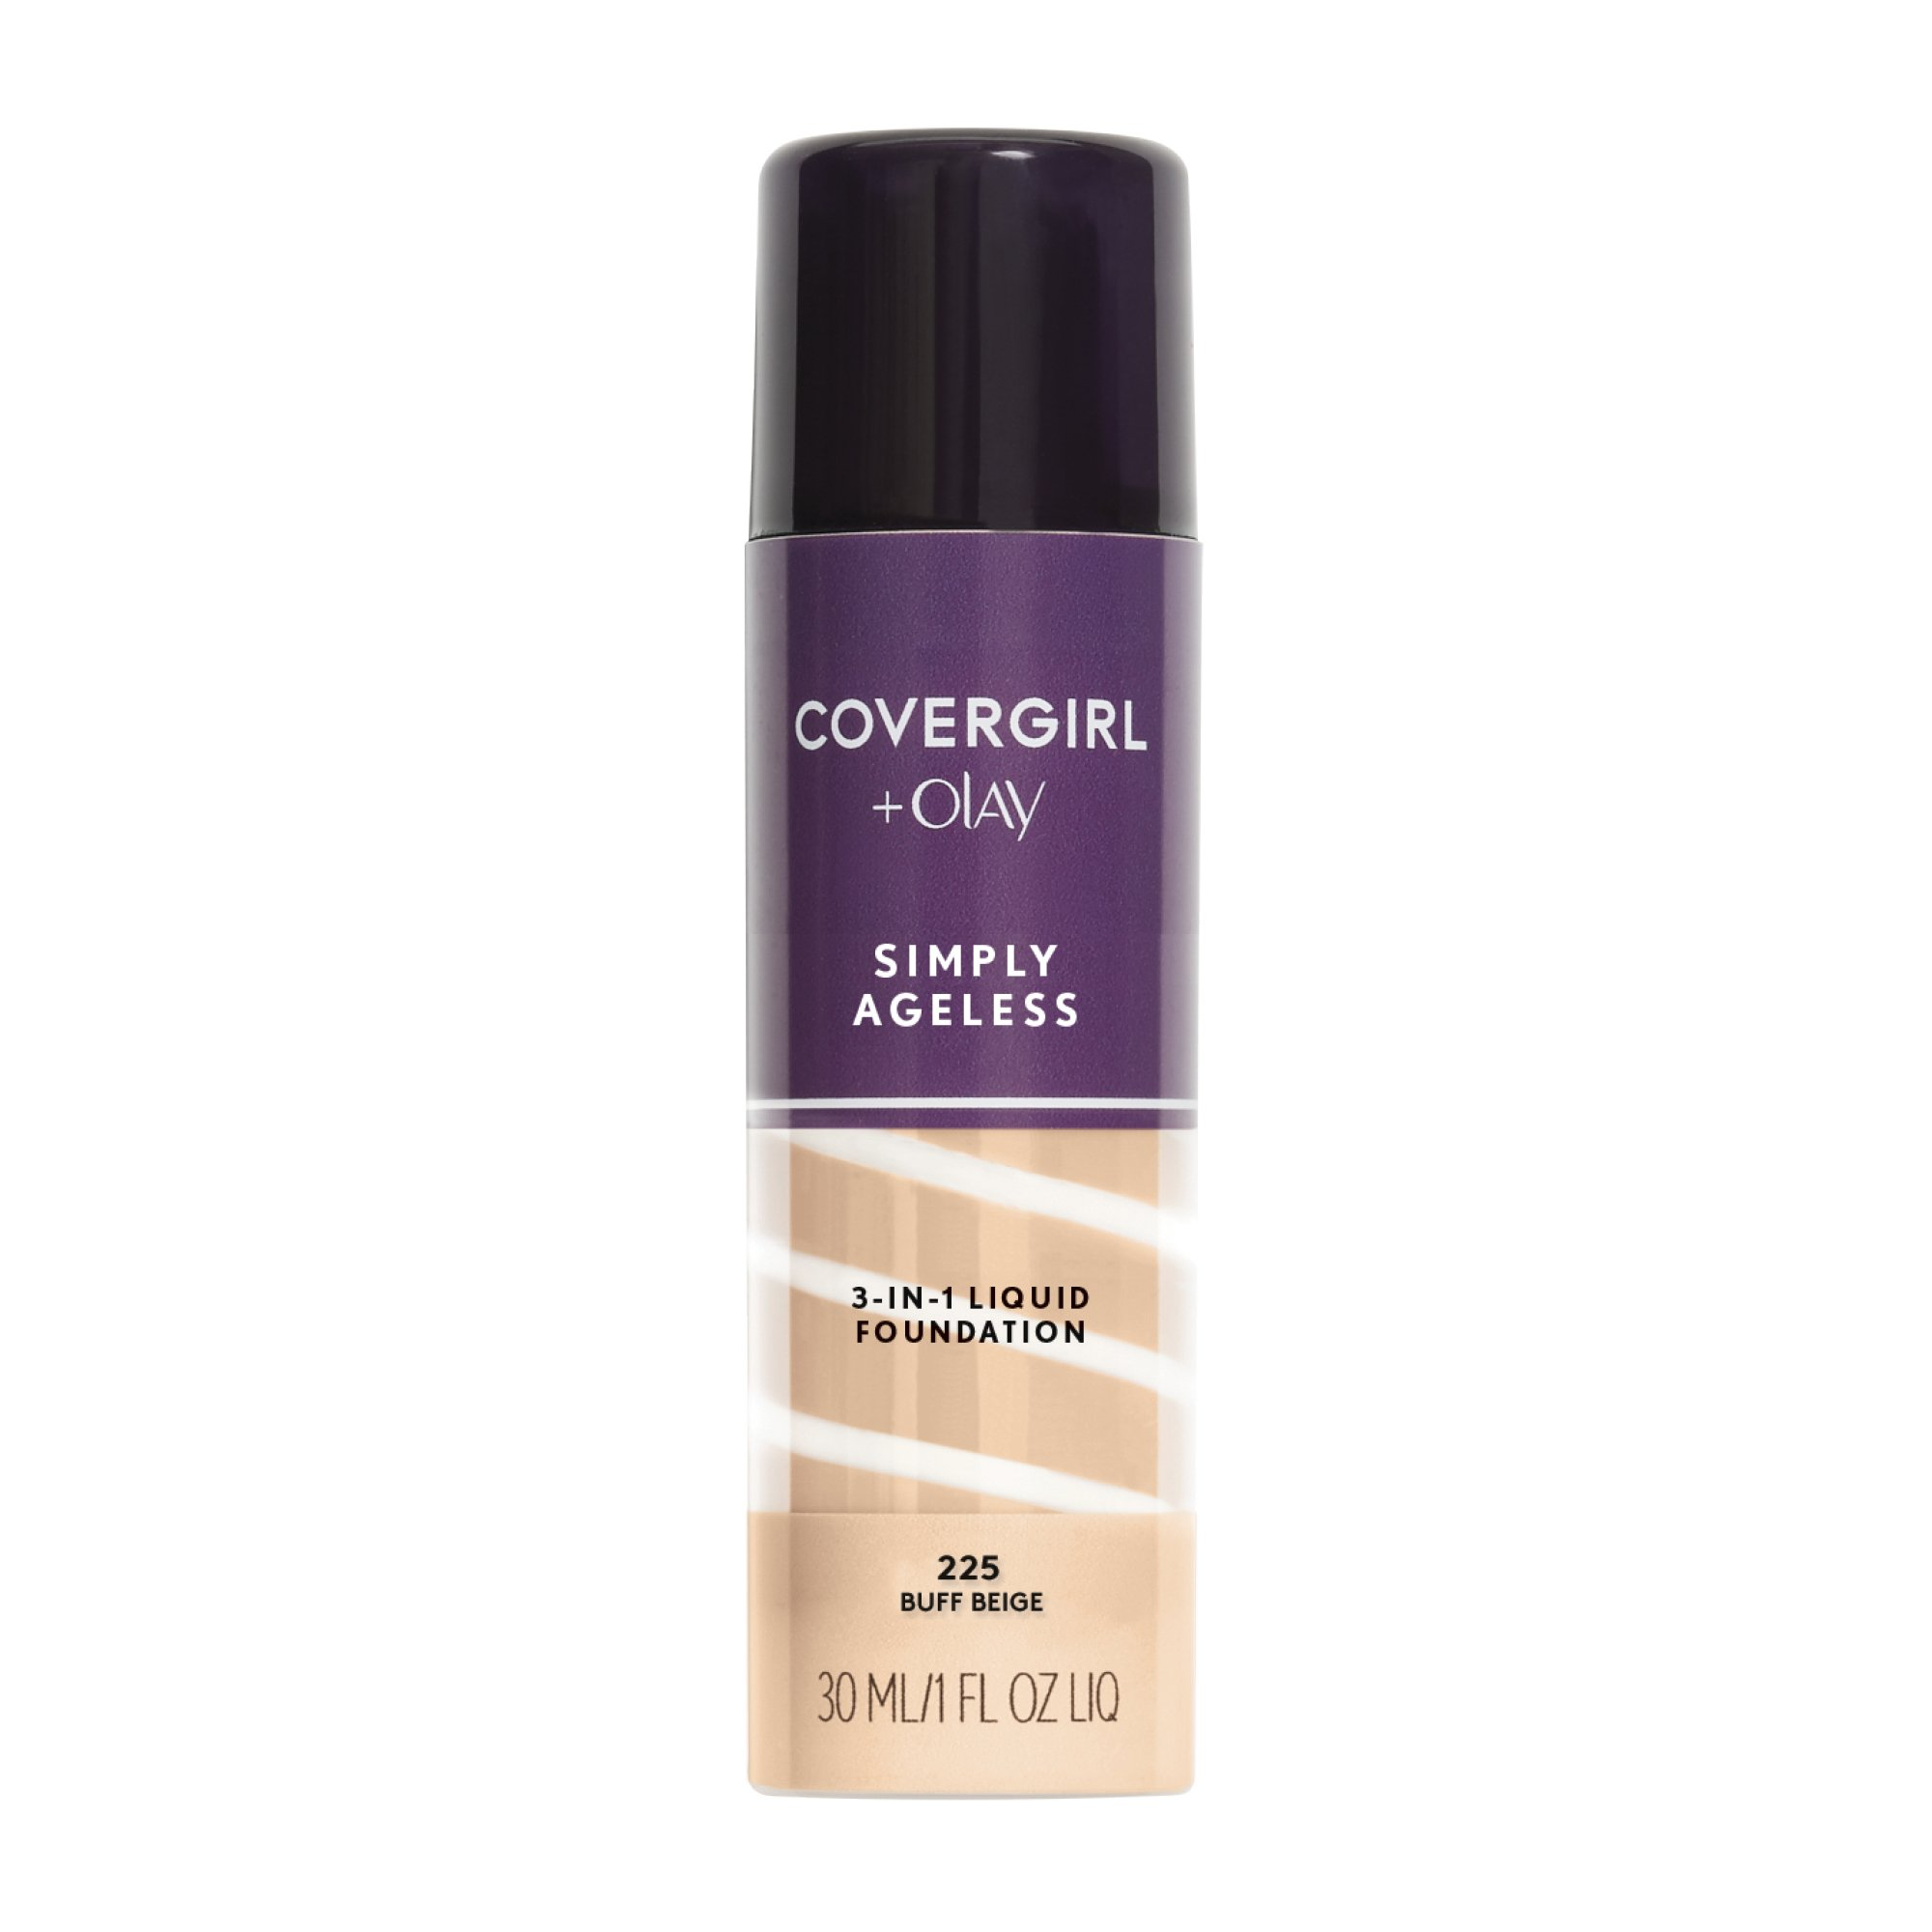 COVERGIRL + Olay Simply Ageless 3-in-1 Liquid Foundation, the #1 Anti-Aging Foundation Now In A Liquid, Buff Beige Color, 1 Ounce (packaging may vary)